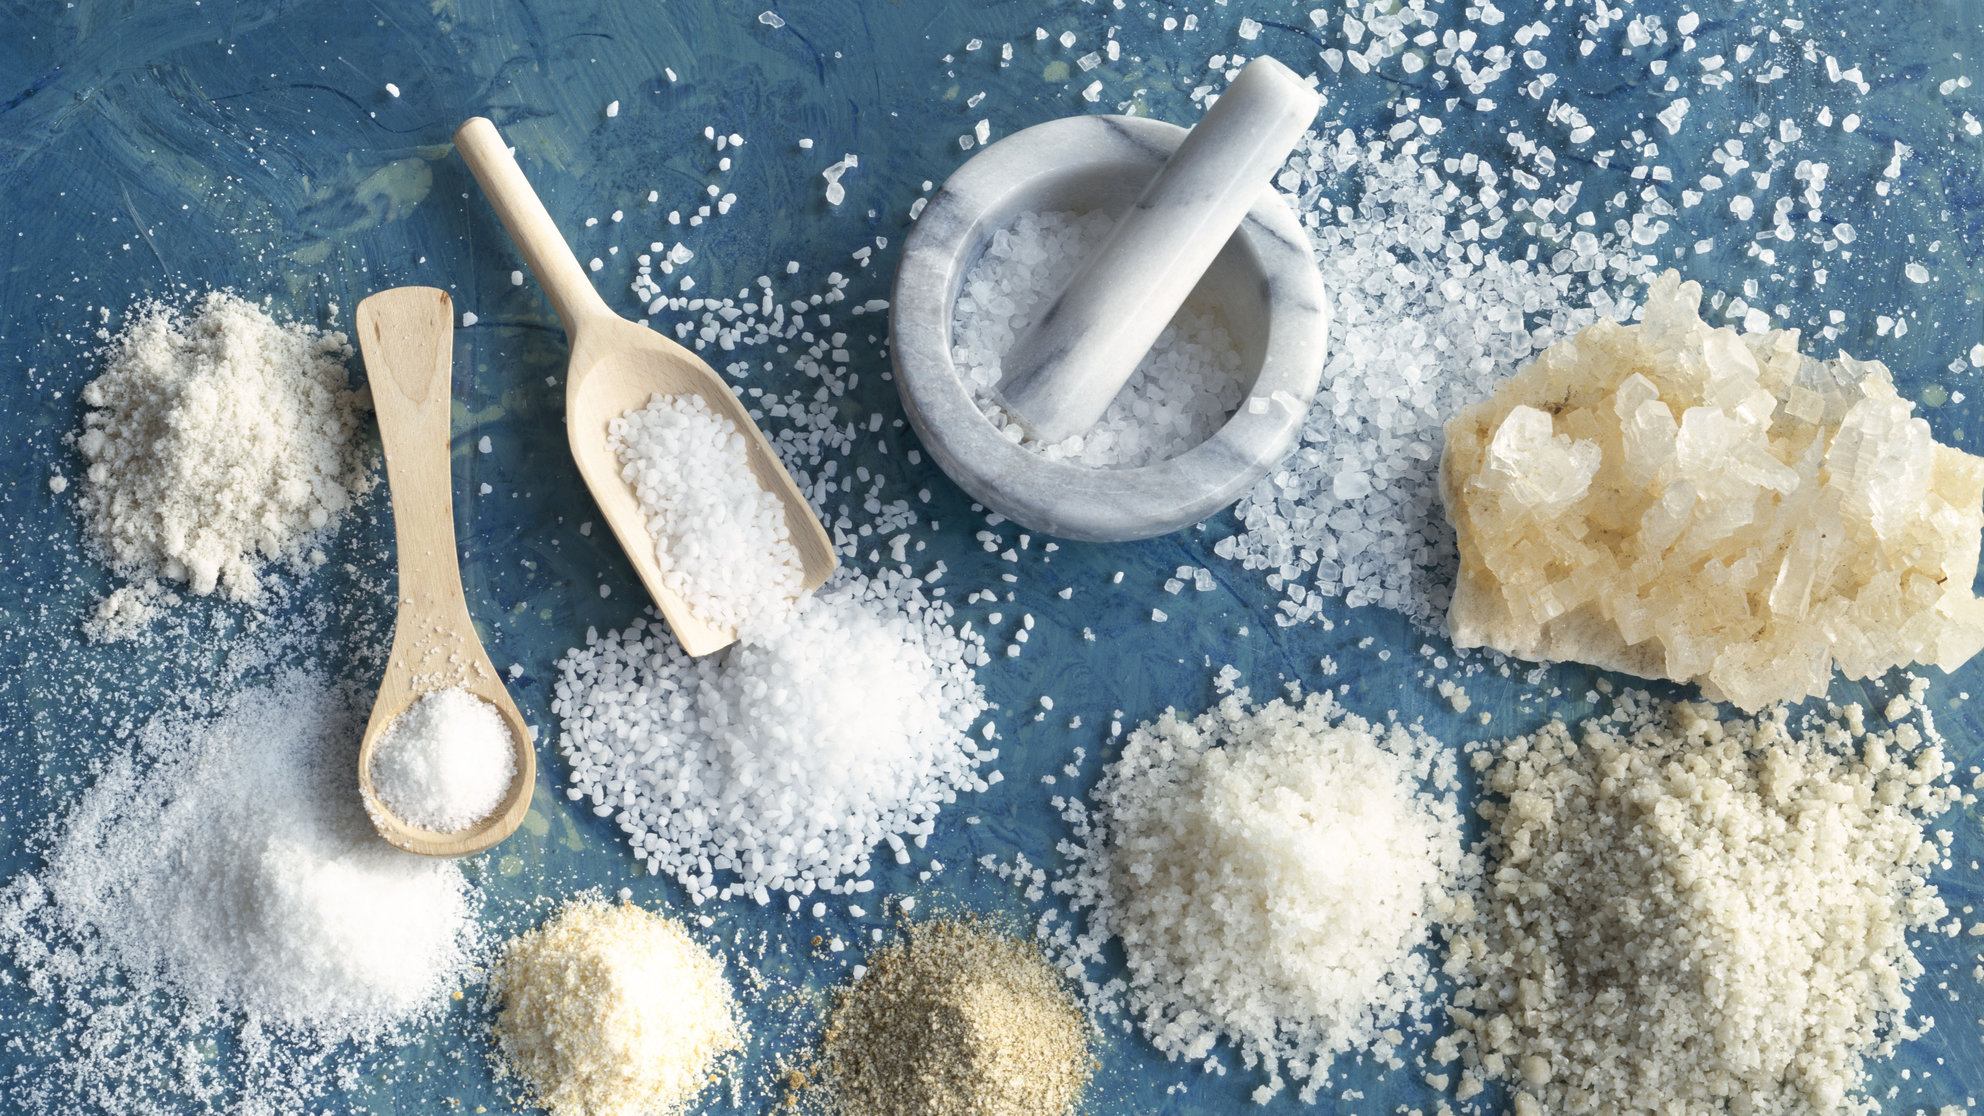 How Much Sodium Should You Actually Eat? An RD Weighs In